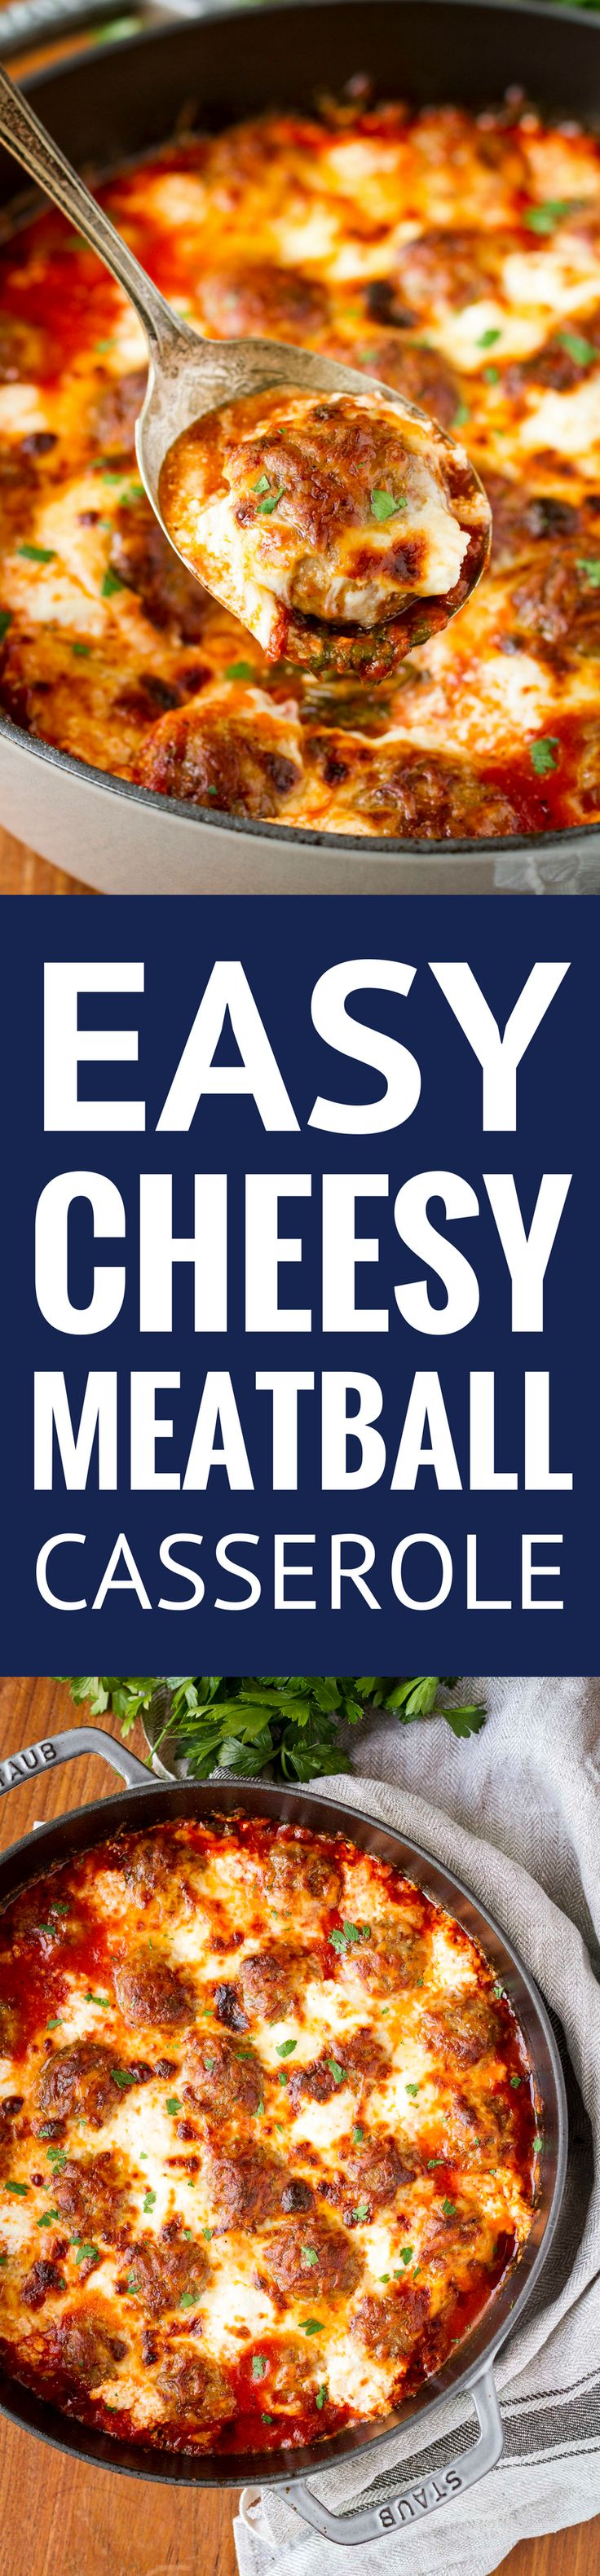 Simple 5-Ingredient Cheesy Meatball Casserole -- this easy meatball casserole boasts just 5 ingredients, yet is still packed with flavor… Serve it as is, over pasta, or on sandwich rolls for a versatile weeknight dinner! | meatball casserole recipe | baked meatball casserole | italian meatball casserole | meatball casserole weeknight meals | find the recipe on unsophisticook.com #AD